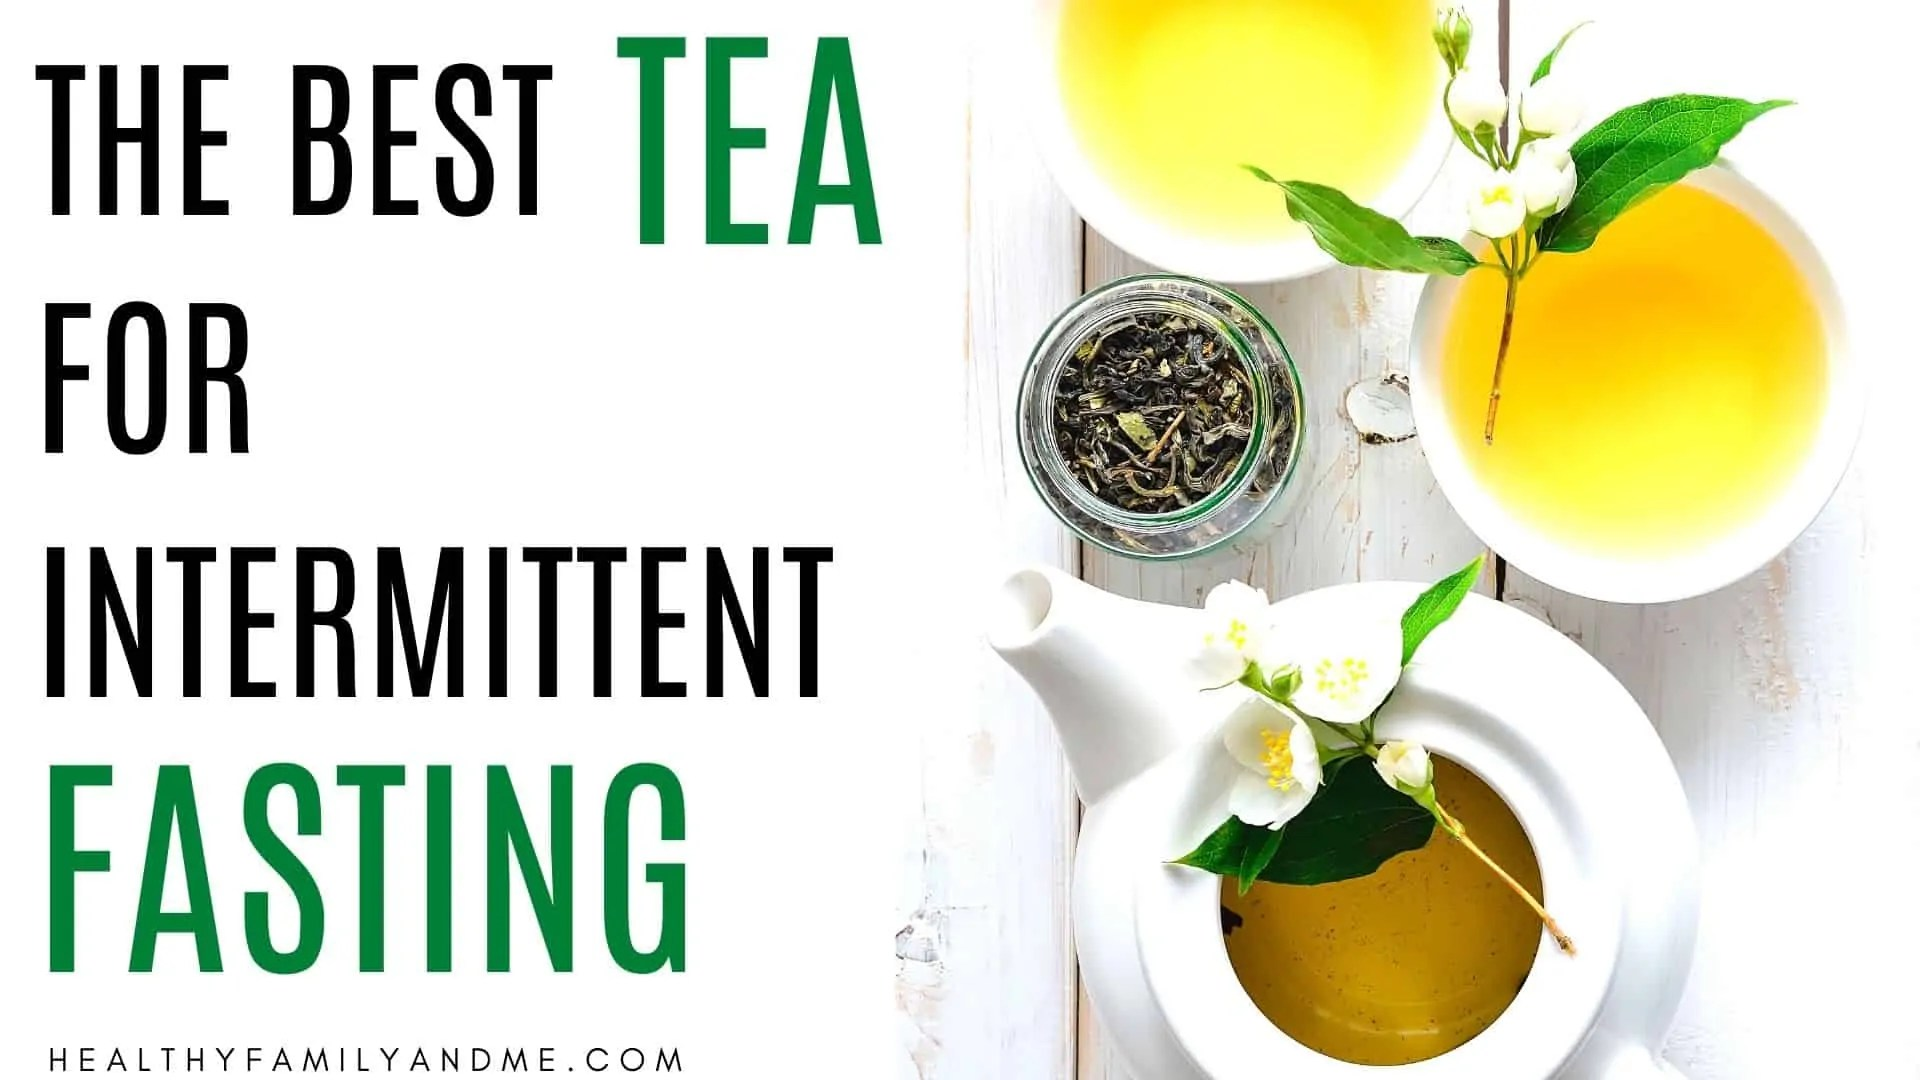 The Best Tea For Intermittent Fasting Why Healthy Family And Me